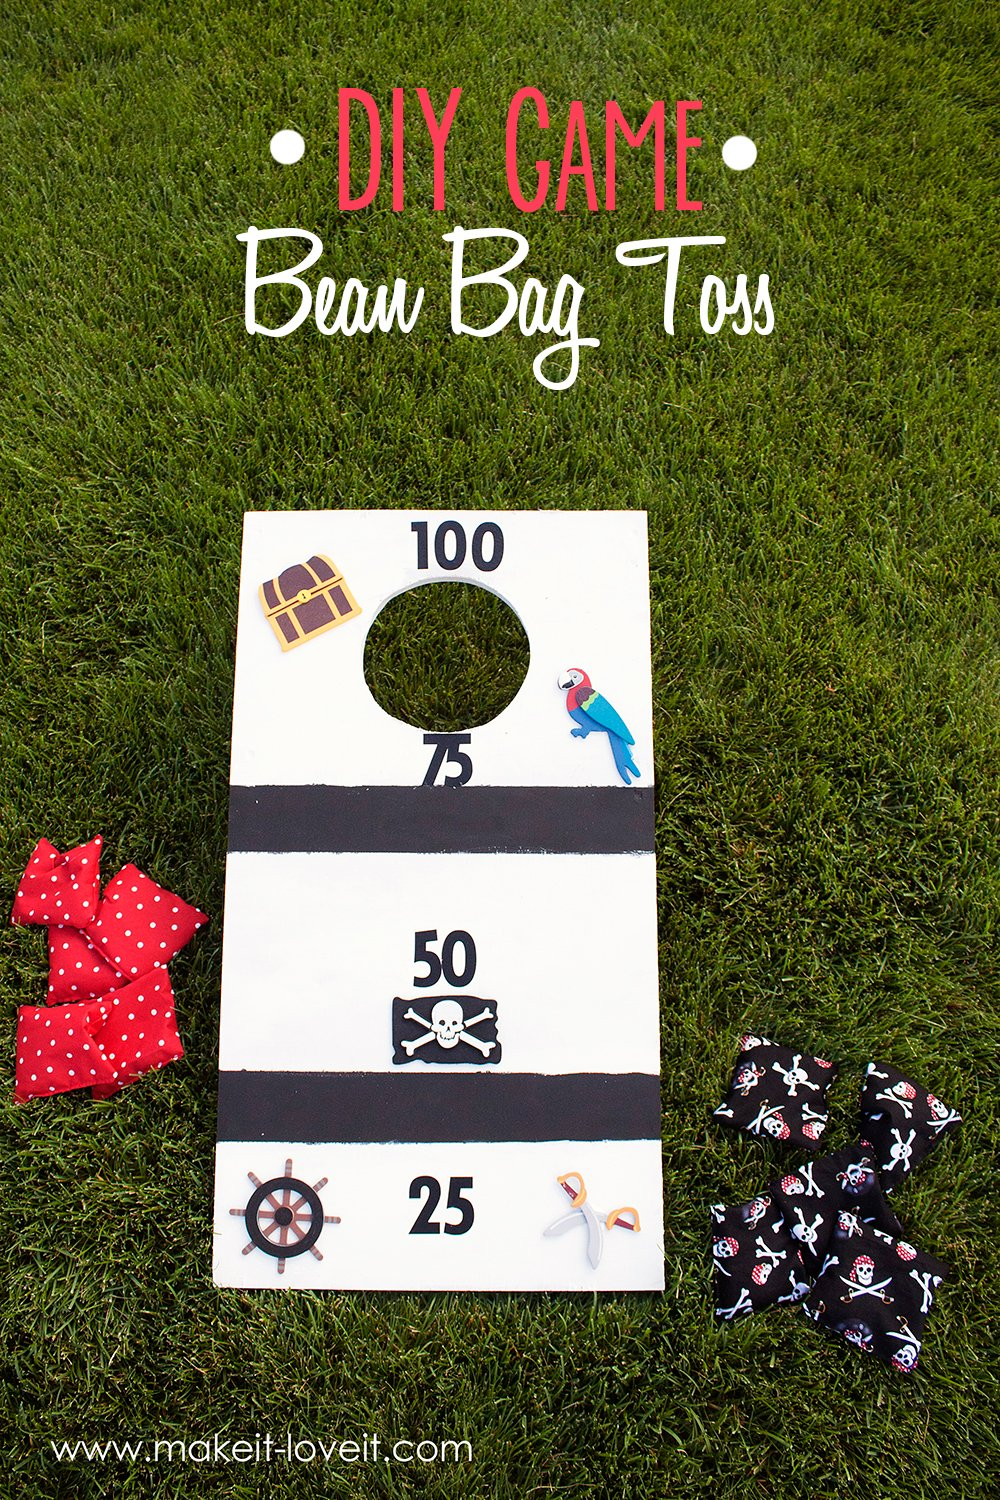 Diy Bean Bag Toss Fun For The Whole Family